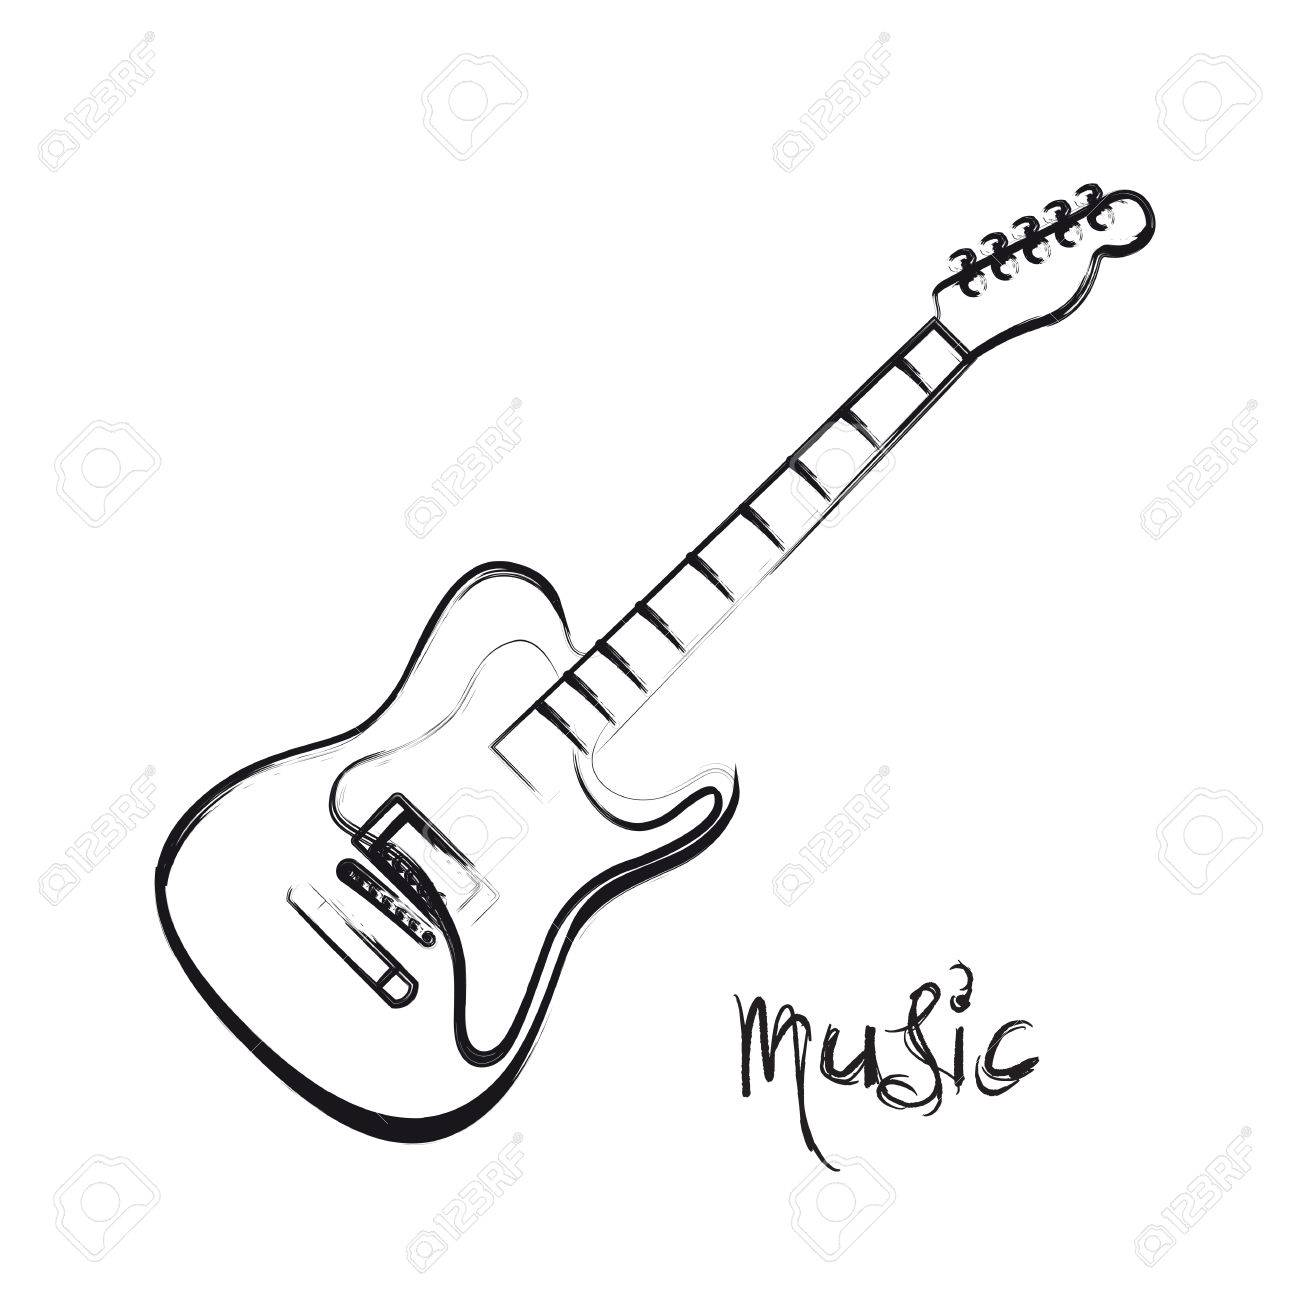 Guitar Drawing Easy At Getdrawings